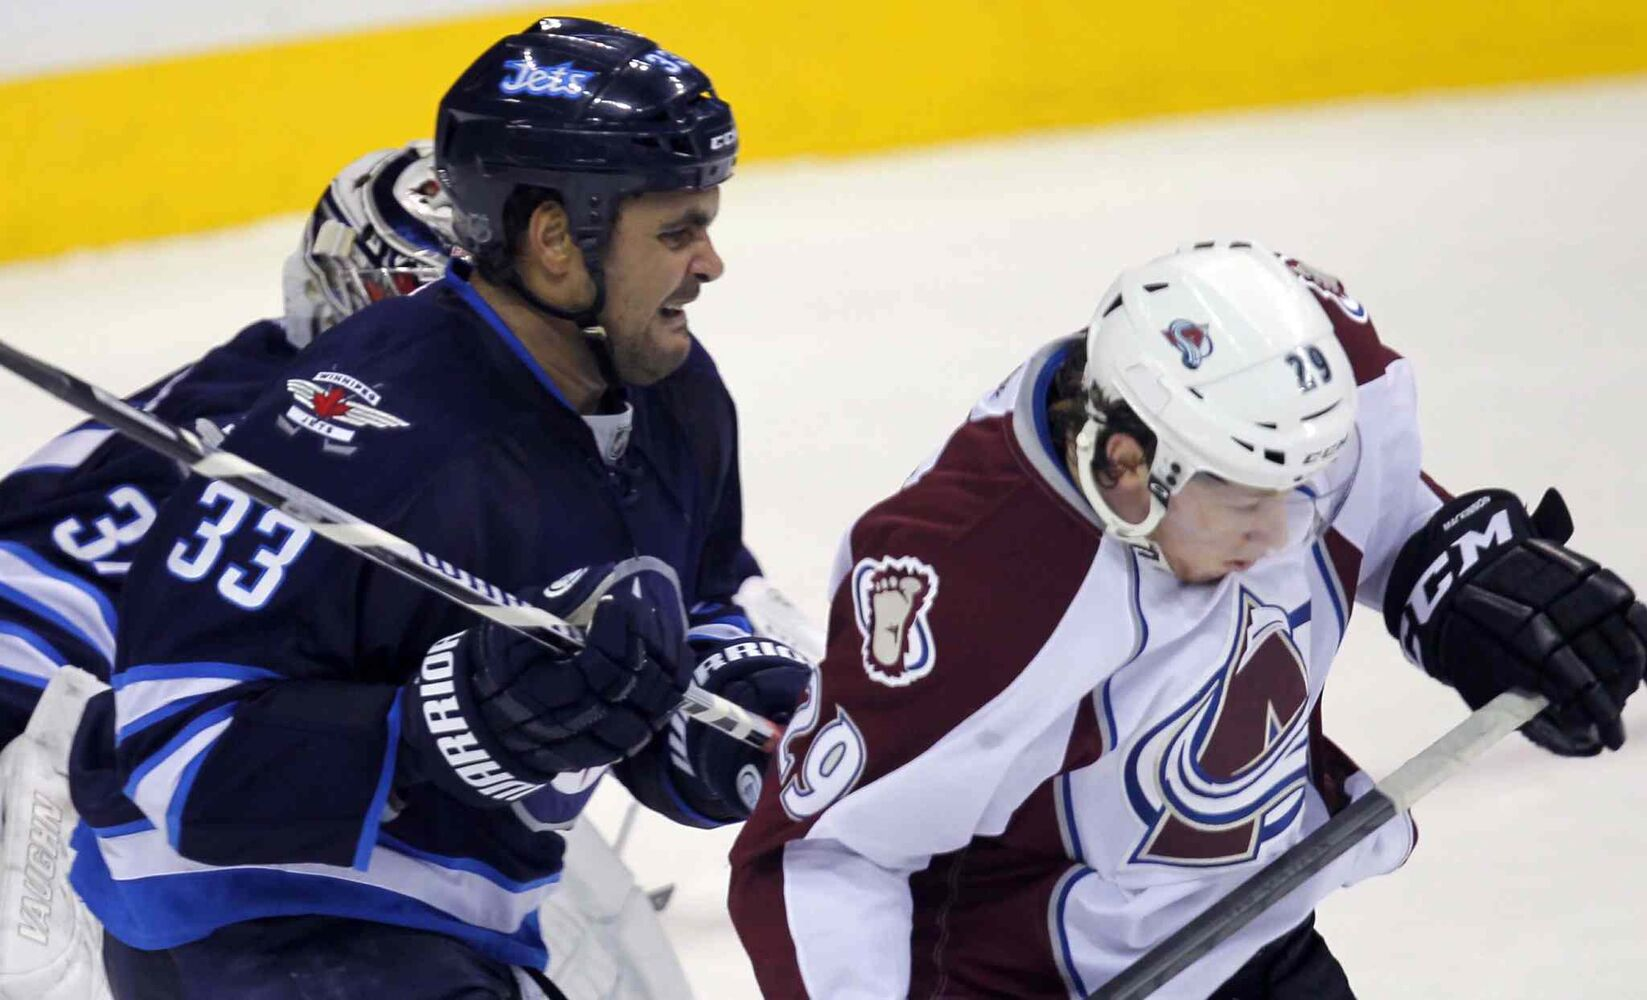 Jets defenceman Dustin Byfuglien tries to clear Colorado Avalanche skater Nathan MacKinnon from the front of the net.